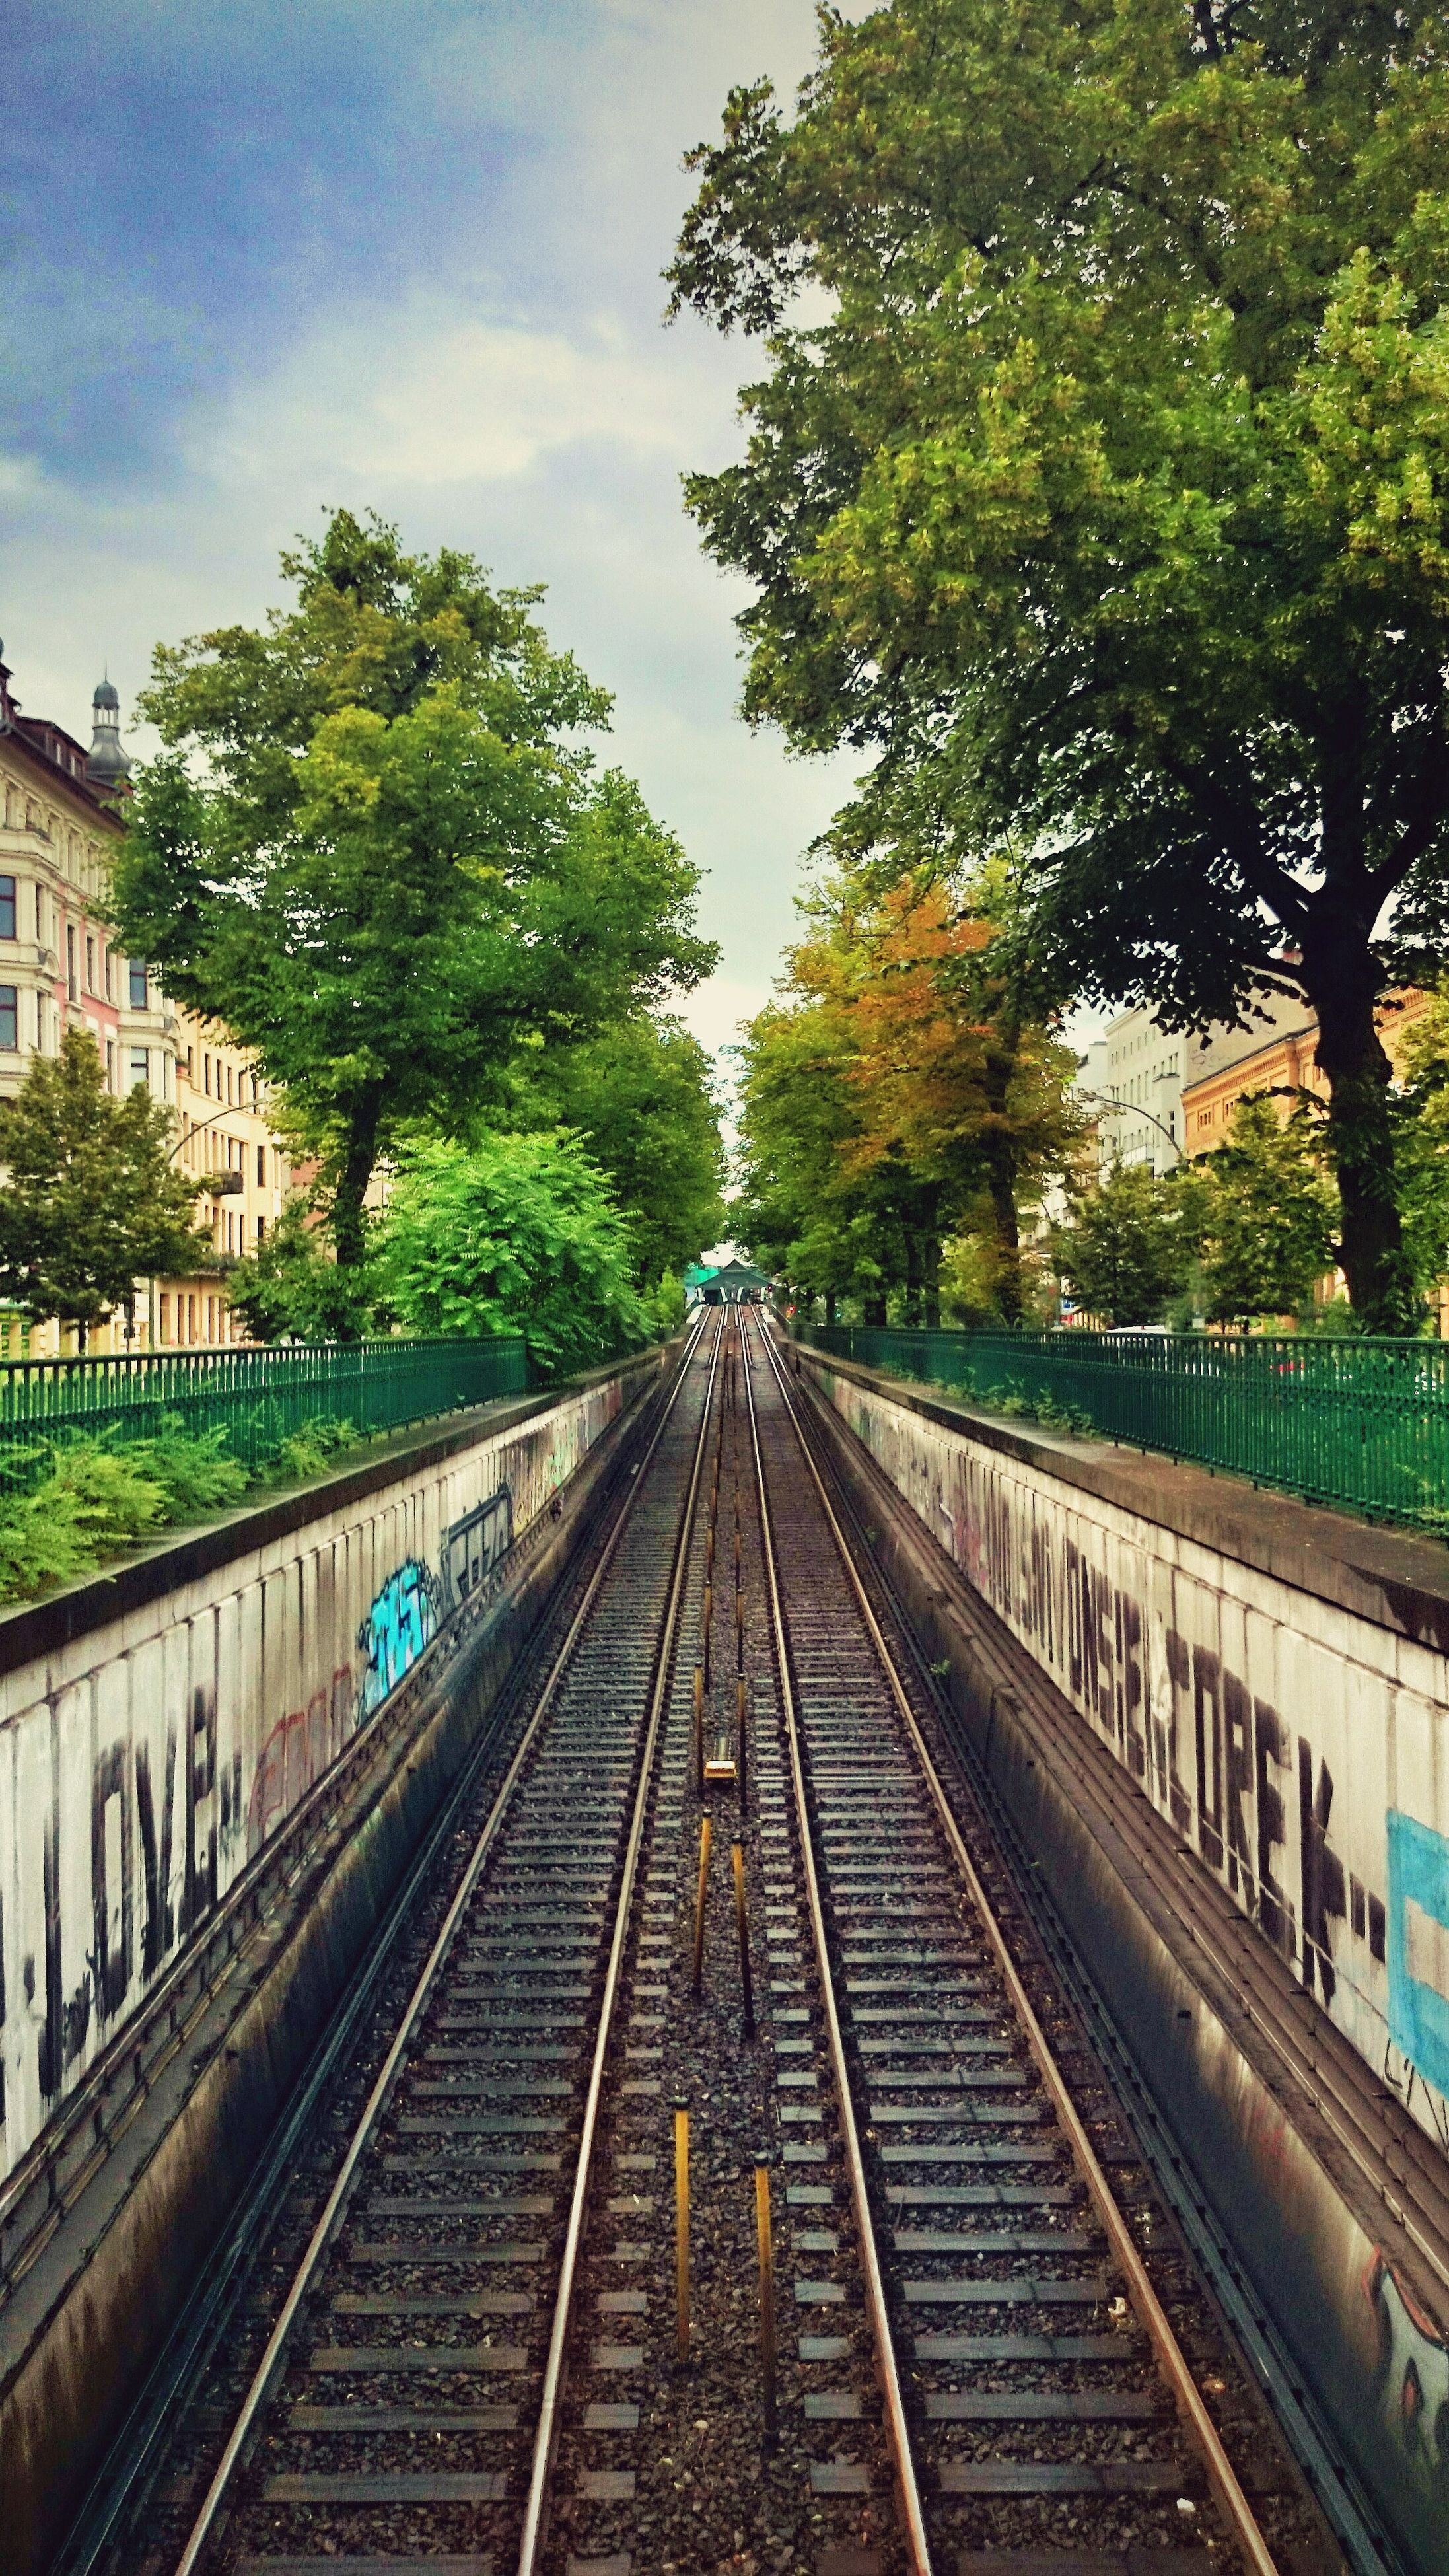 railroad track, rail transportation, transportation, tree, diminishing perspective, the way forward, built structure, architecture, vanishing point, public transportation, sky, railing, building exterior, railway track, railroad station platform, day, high angle view, railroad station, city, connection